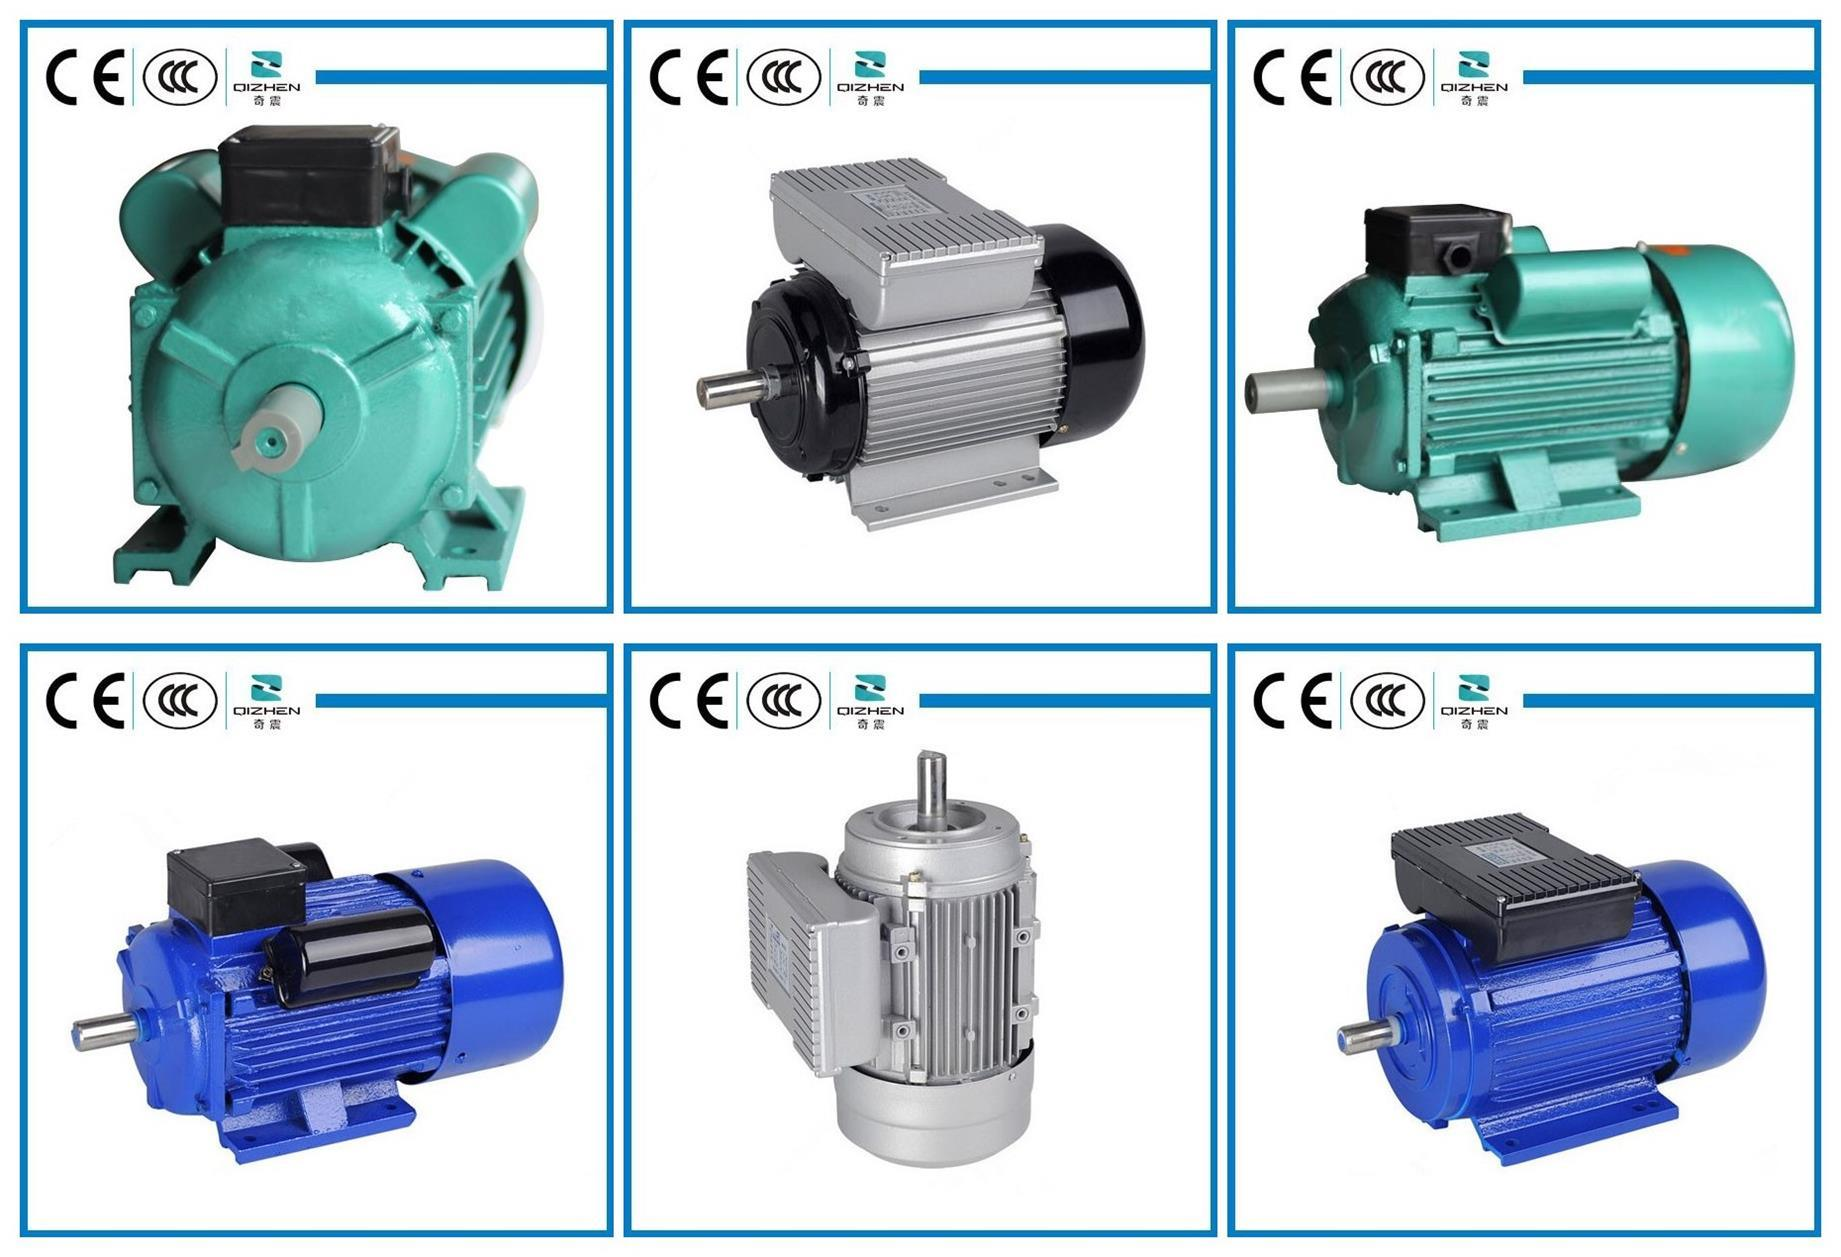 air compressor use 4KW 3HP 220V single phase two-value capacitor ...